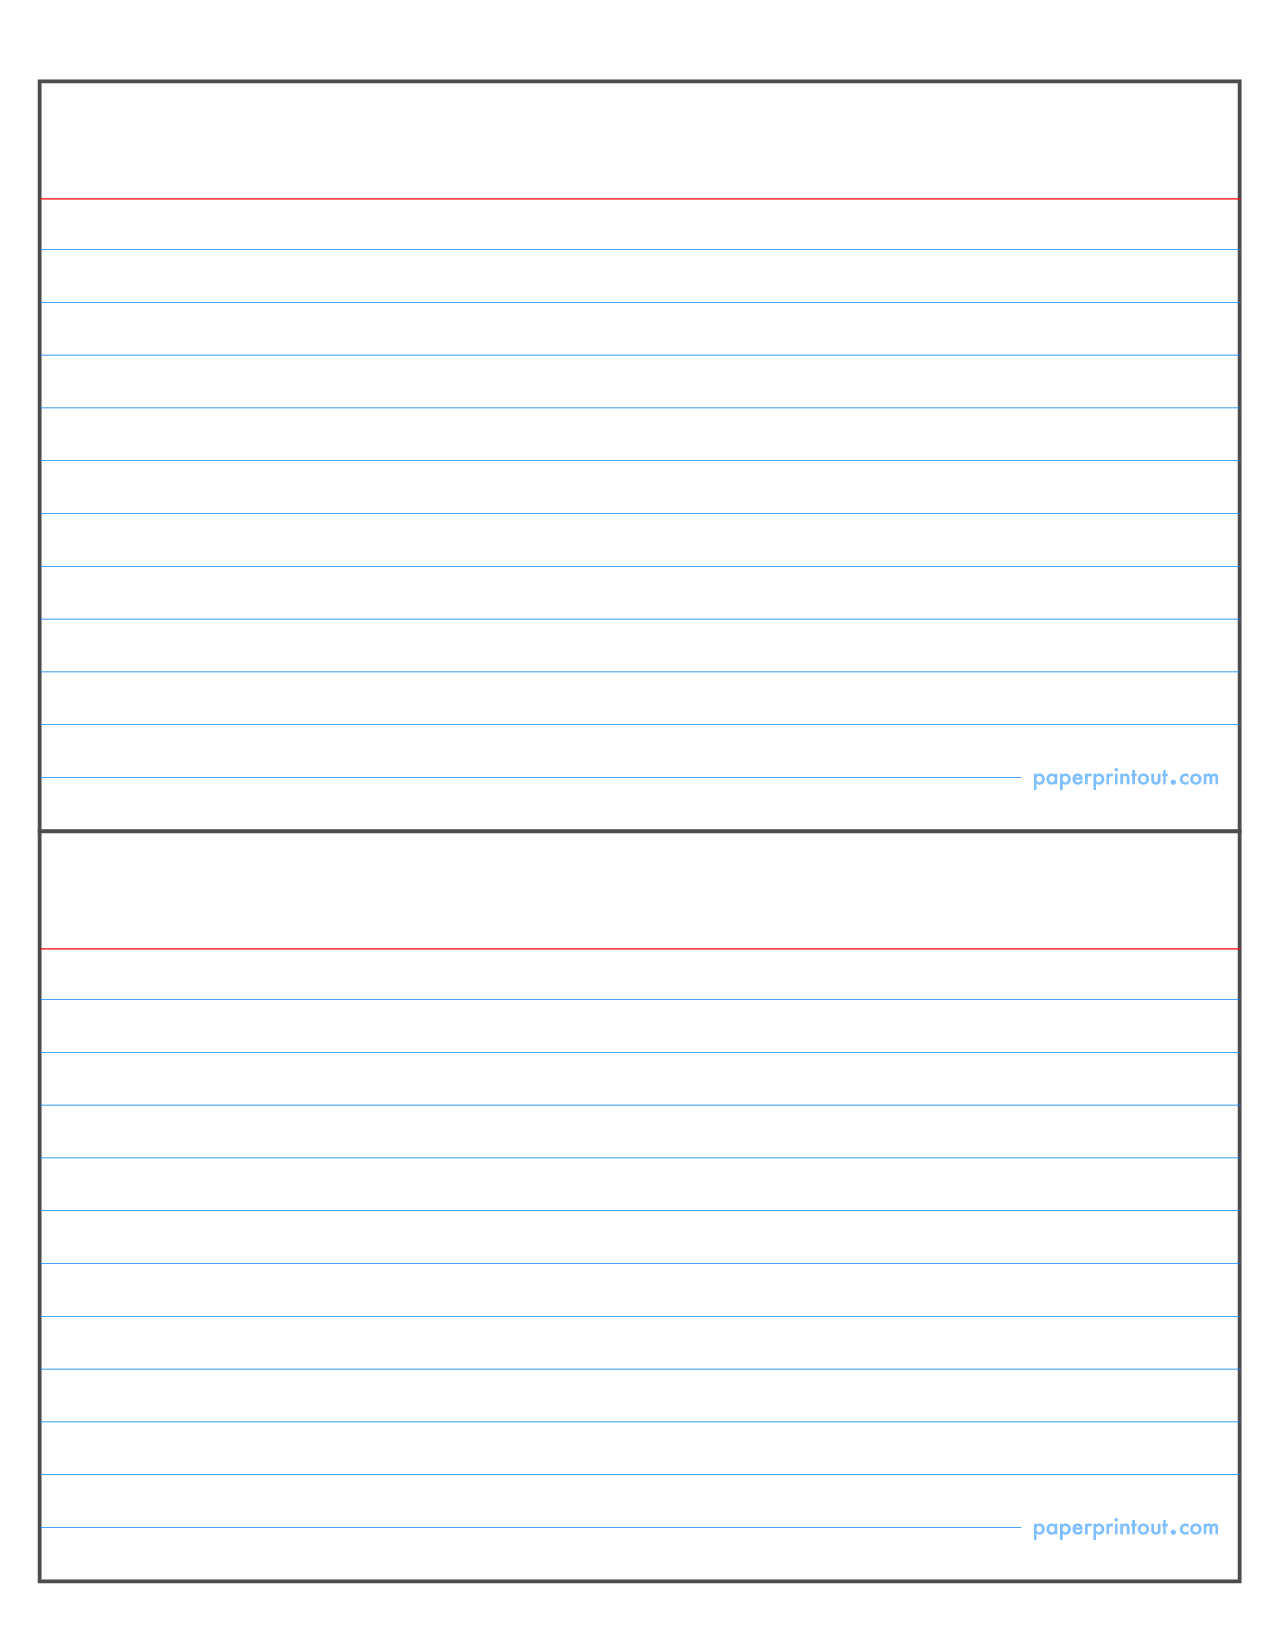 3X5 Index Card Template For Microsoft Word - Falep Within 3X5 Blank Index Card Template